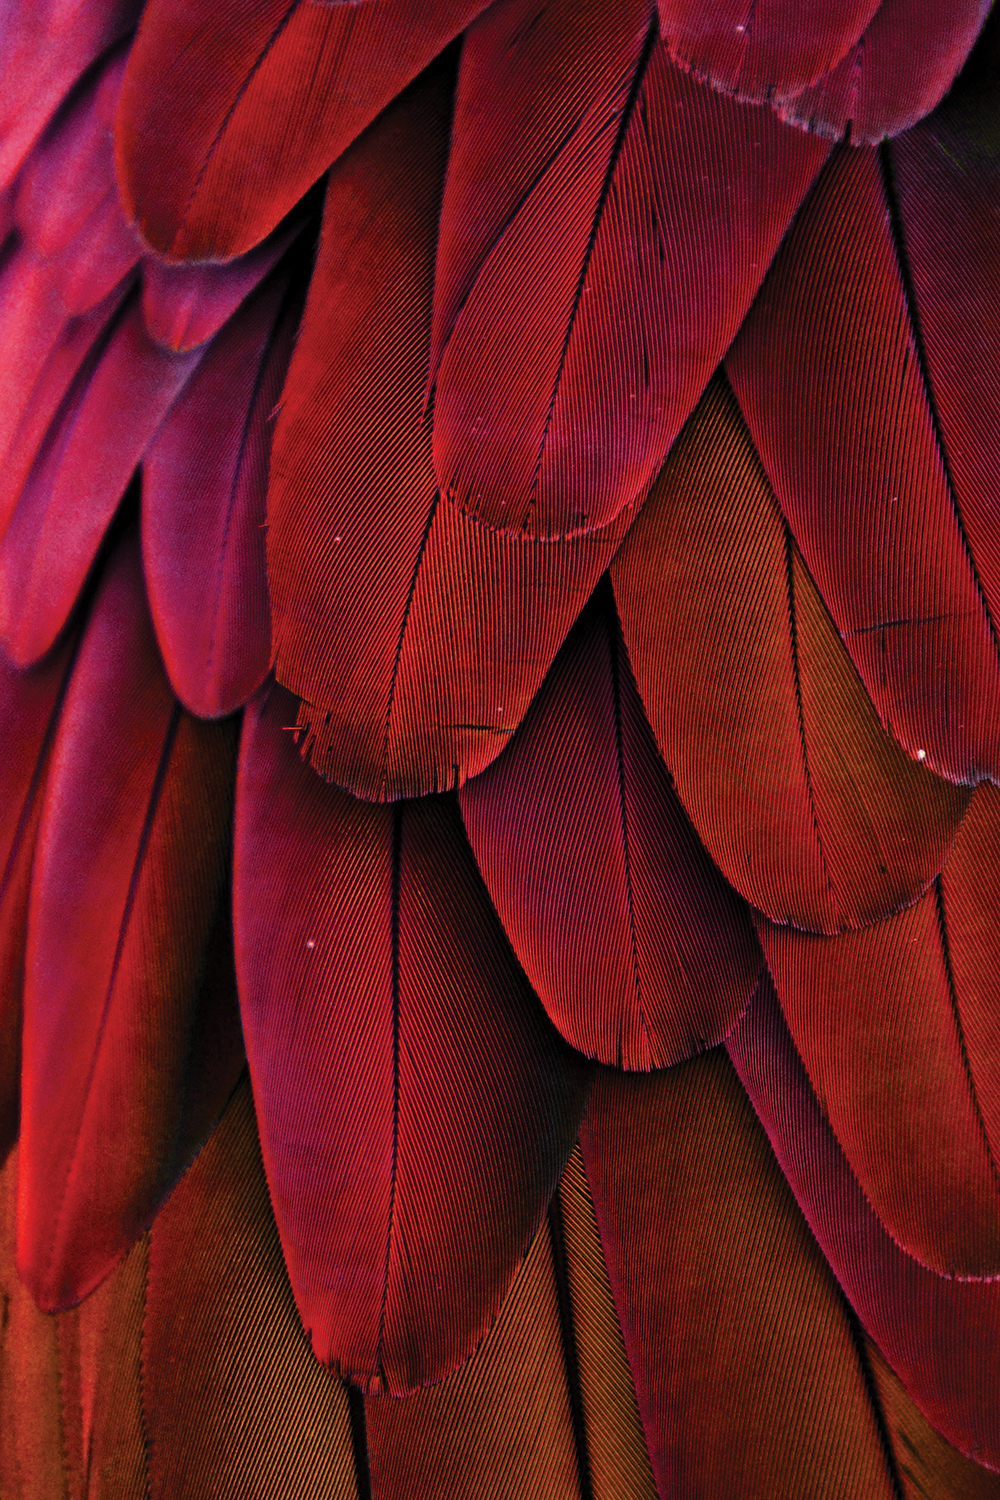 Close-up photography of red macaw feathers